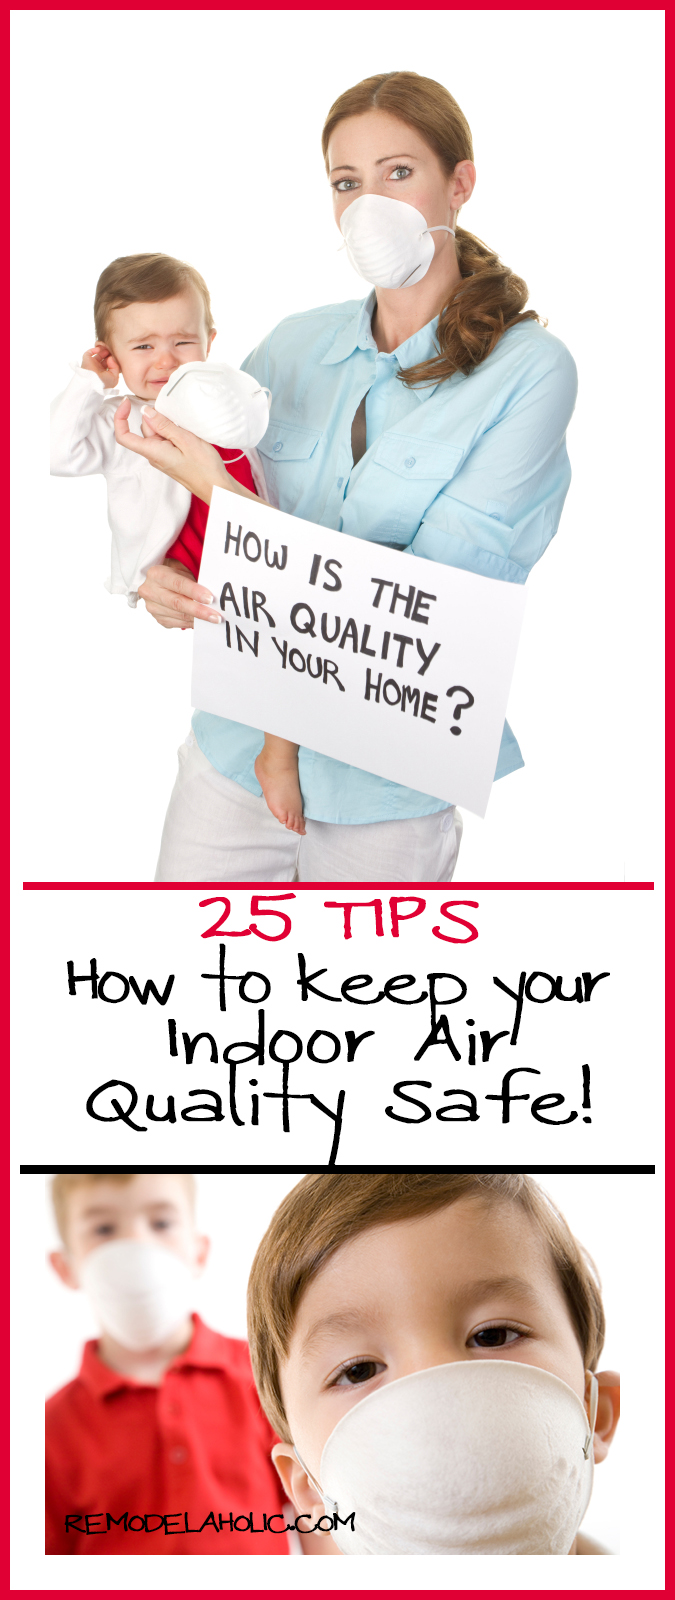 25 tips for cleaning you indoor air quality @remodelaholic